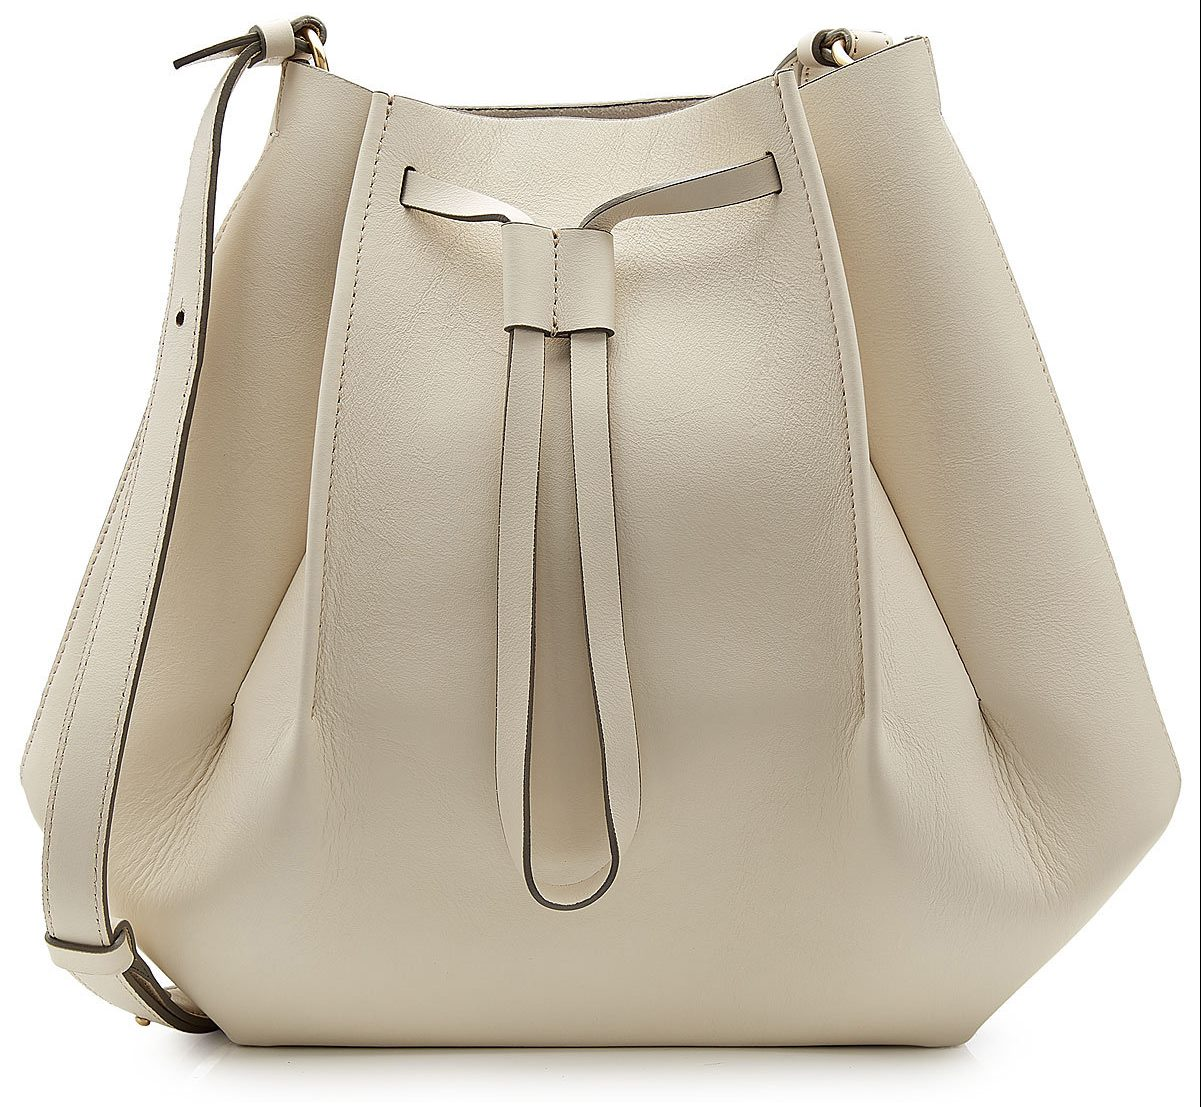 Maison Margiela Leather Shoulder Bag with Drawstring